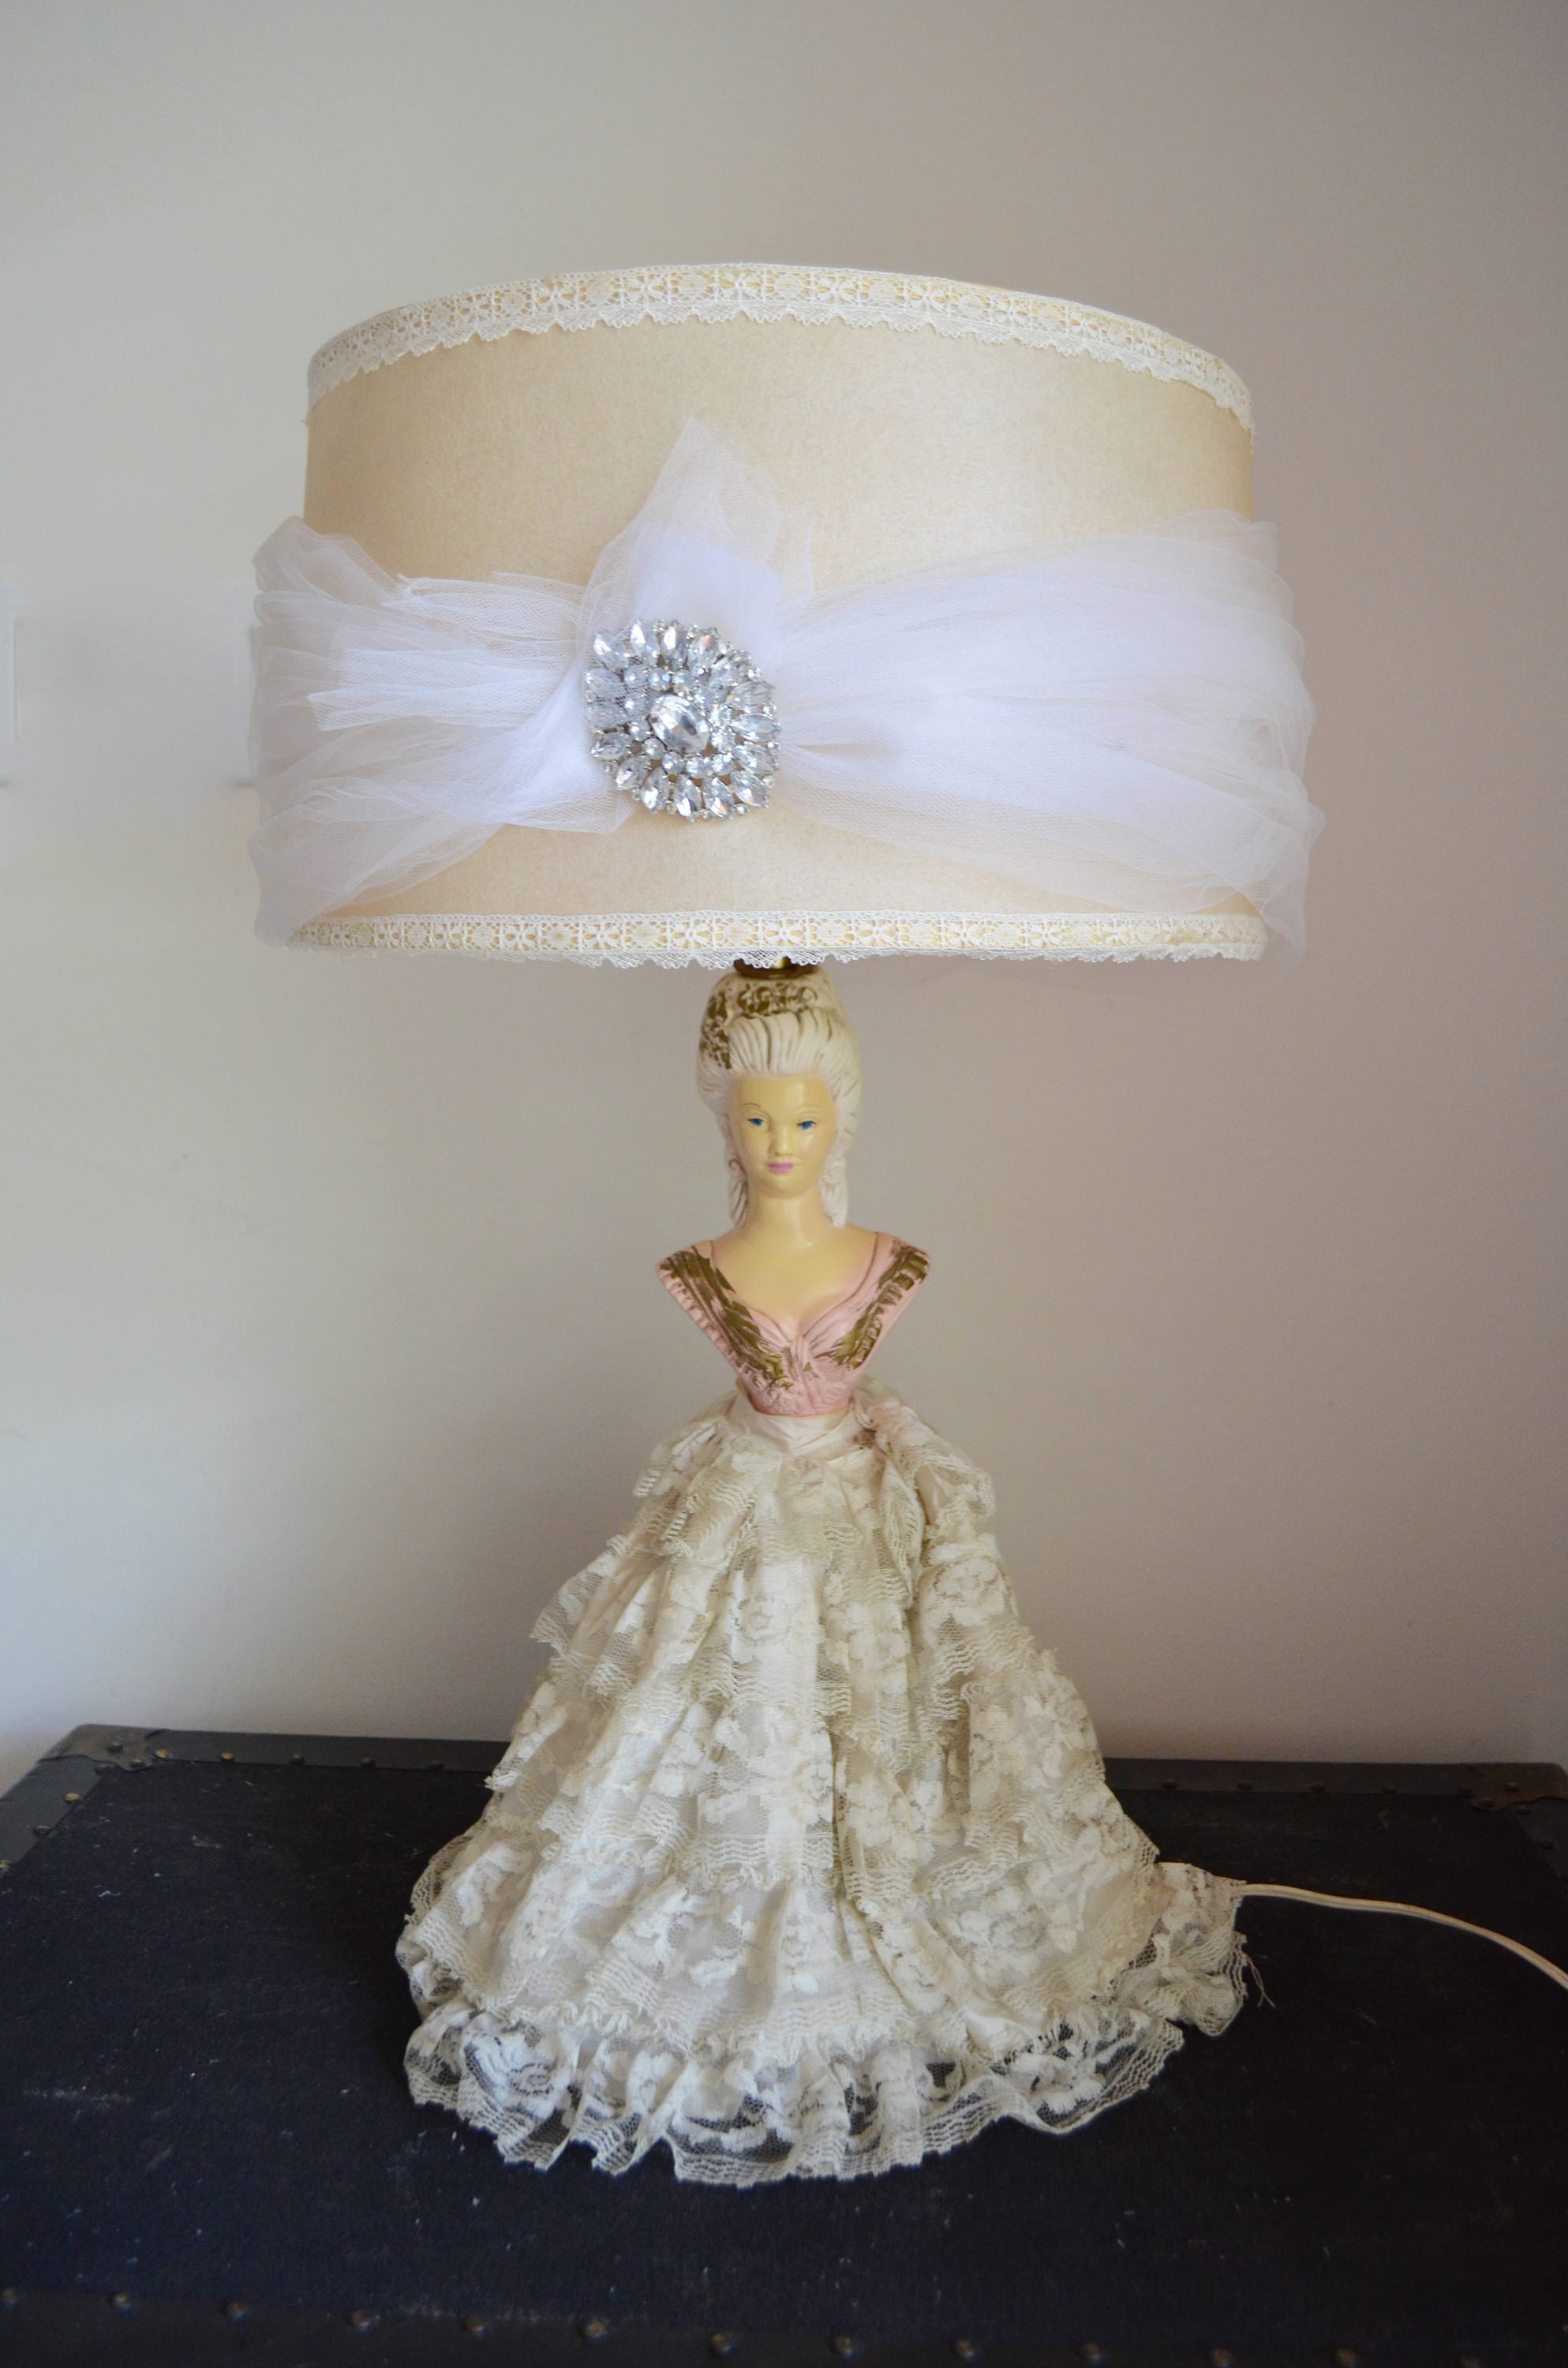 Marie Antoinette Boudoir Tall Figurine Porcelain Lamp With Shade Tule Brooch 1950 Chalk Half Body